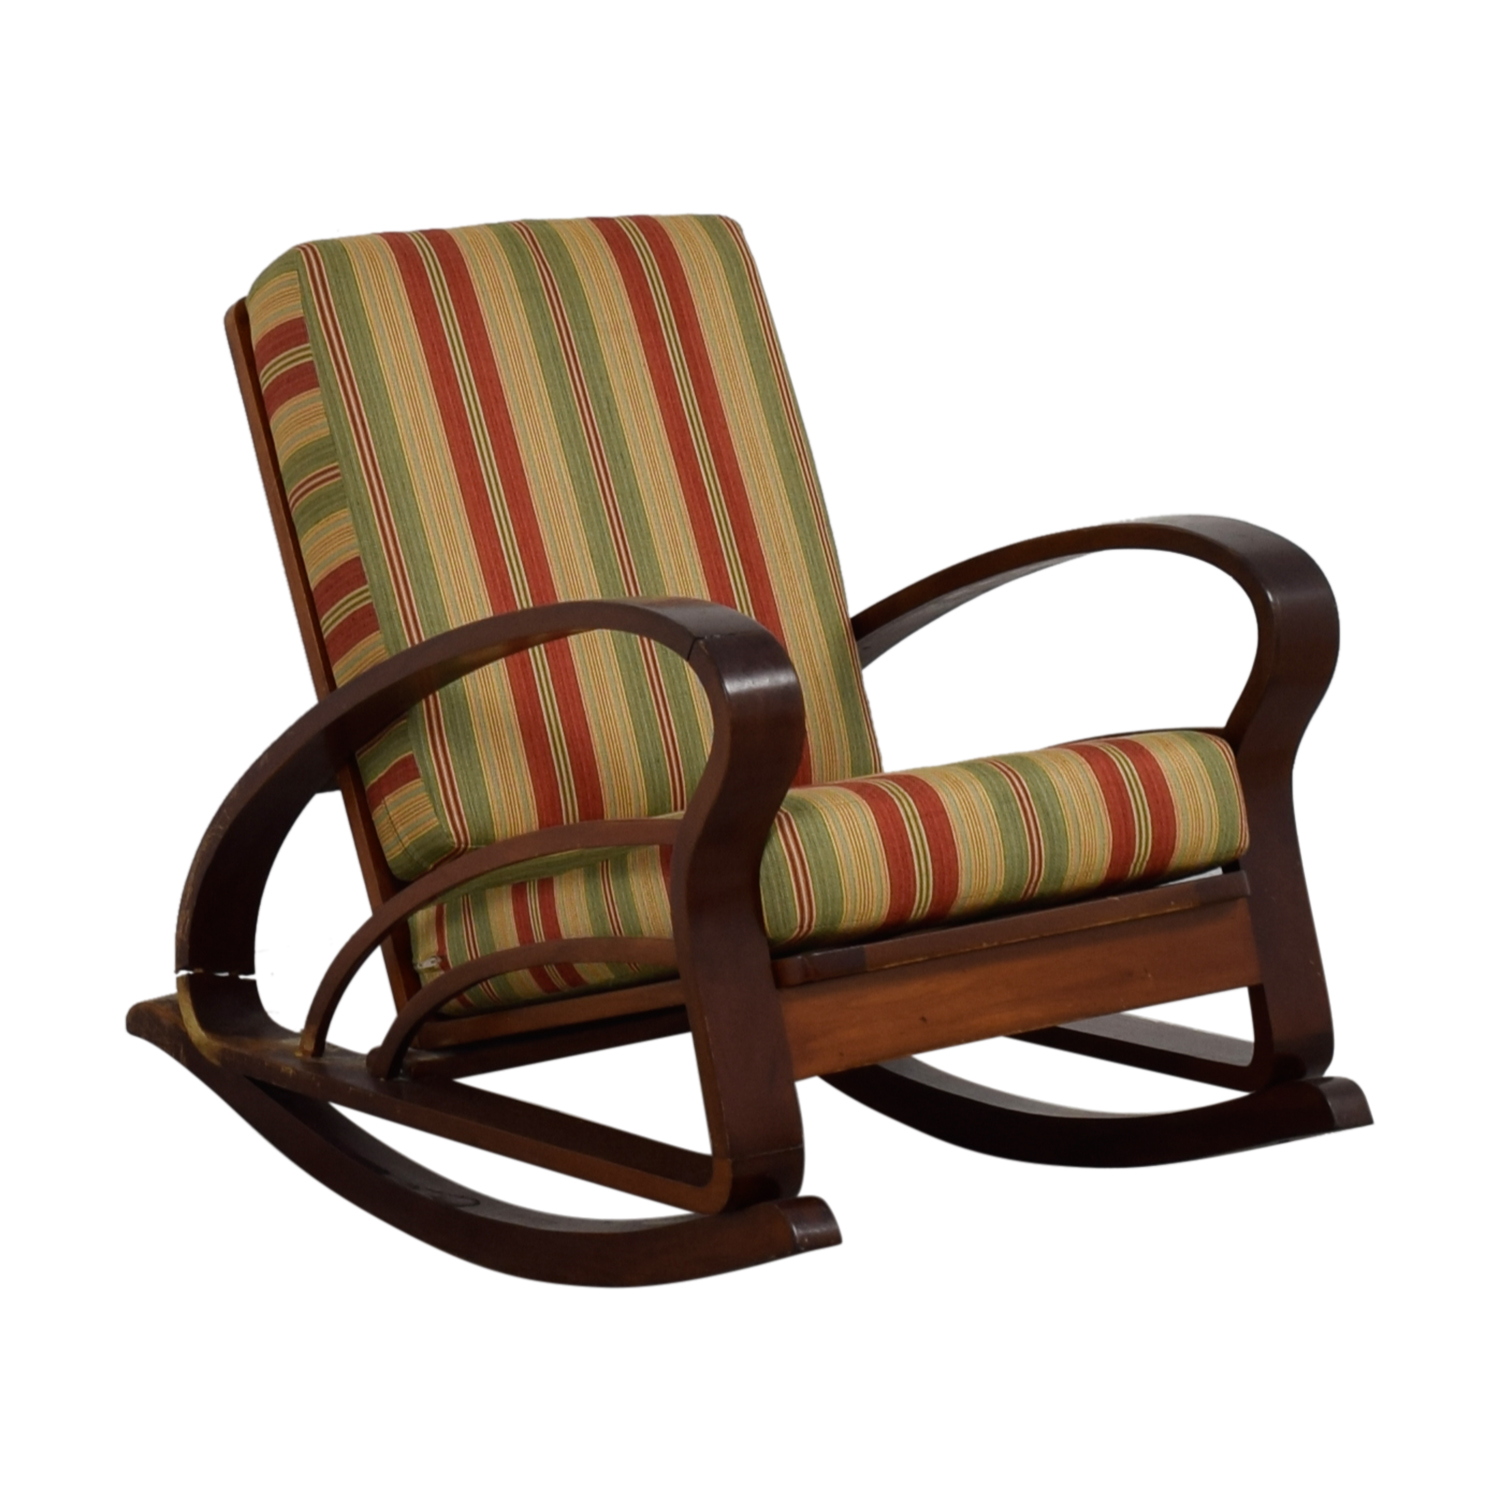 ... Buy Antique Caribbean Striped Upholstery Wood Rocker Accent Chairs ...